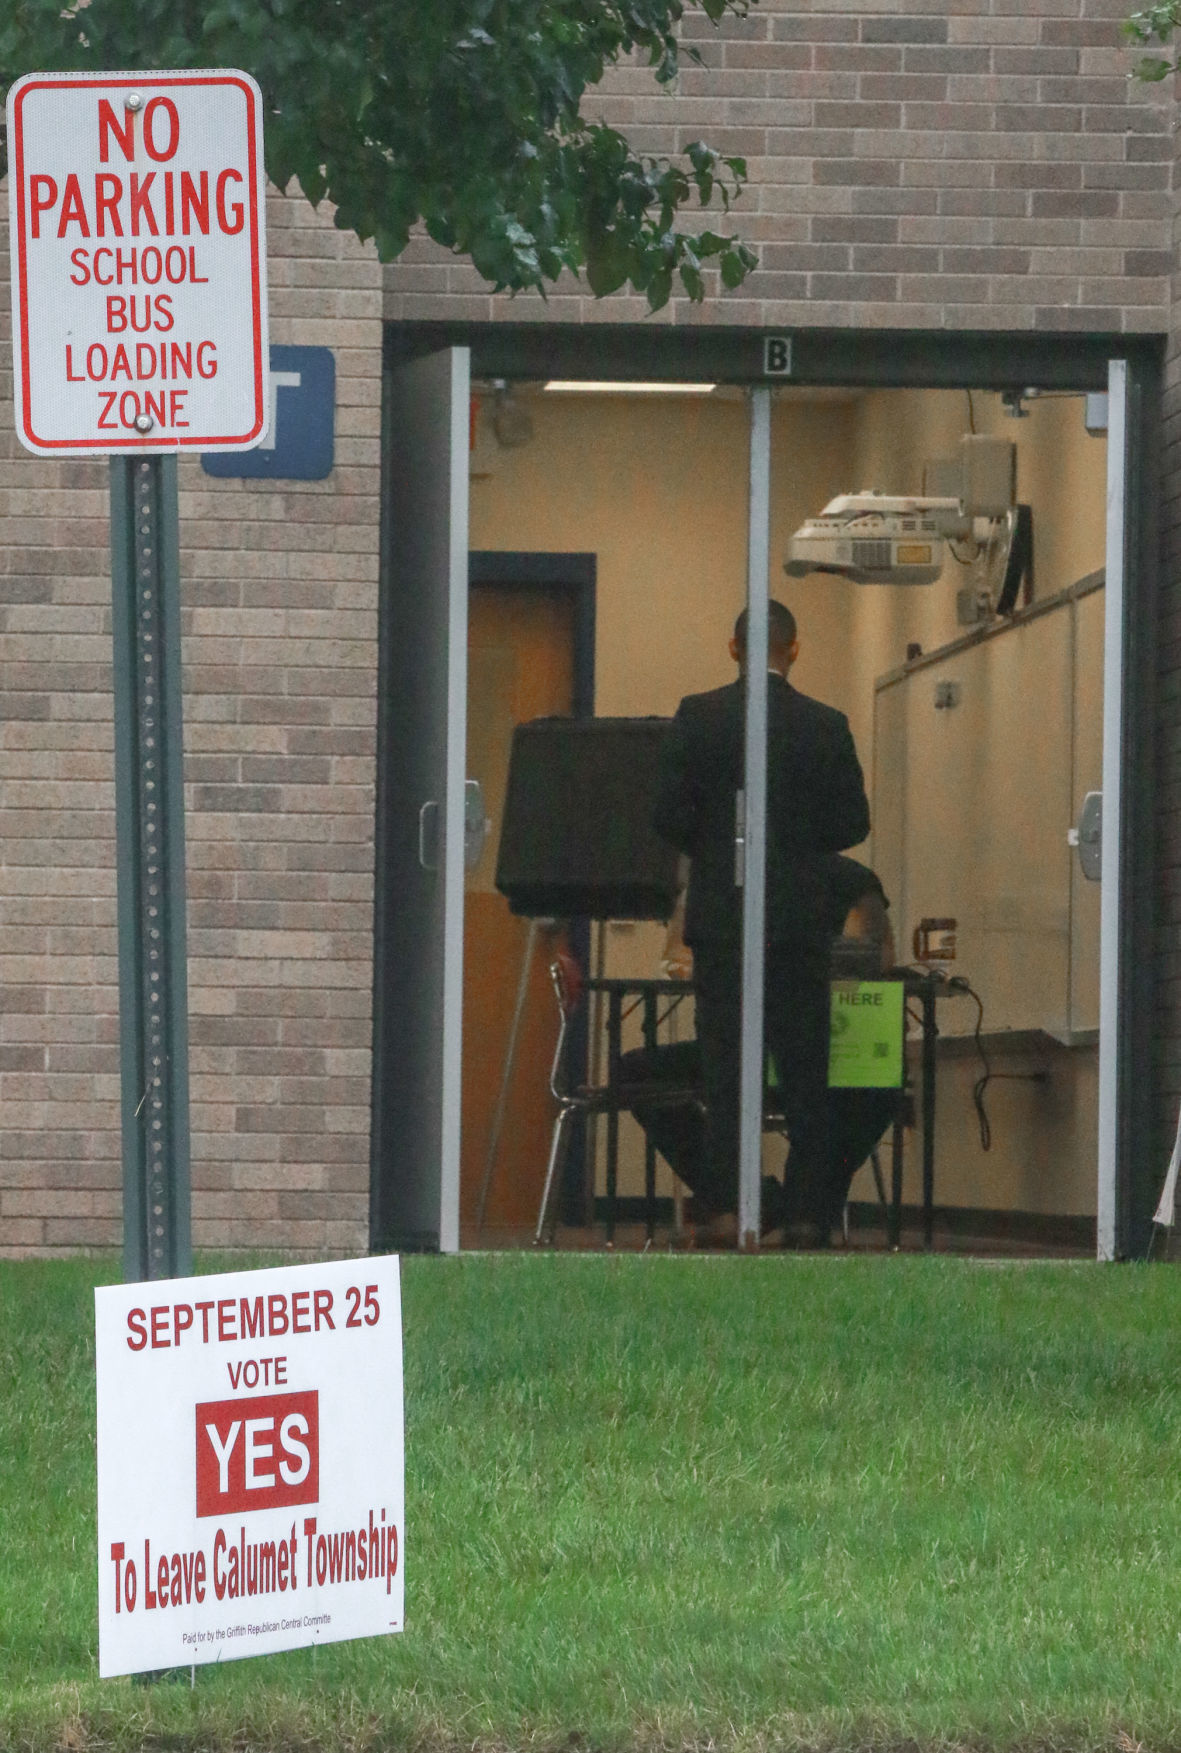 Voters go to the polls to decide whether Griffith secedes from Calumet Township